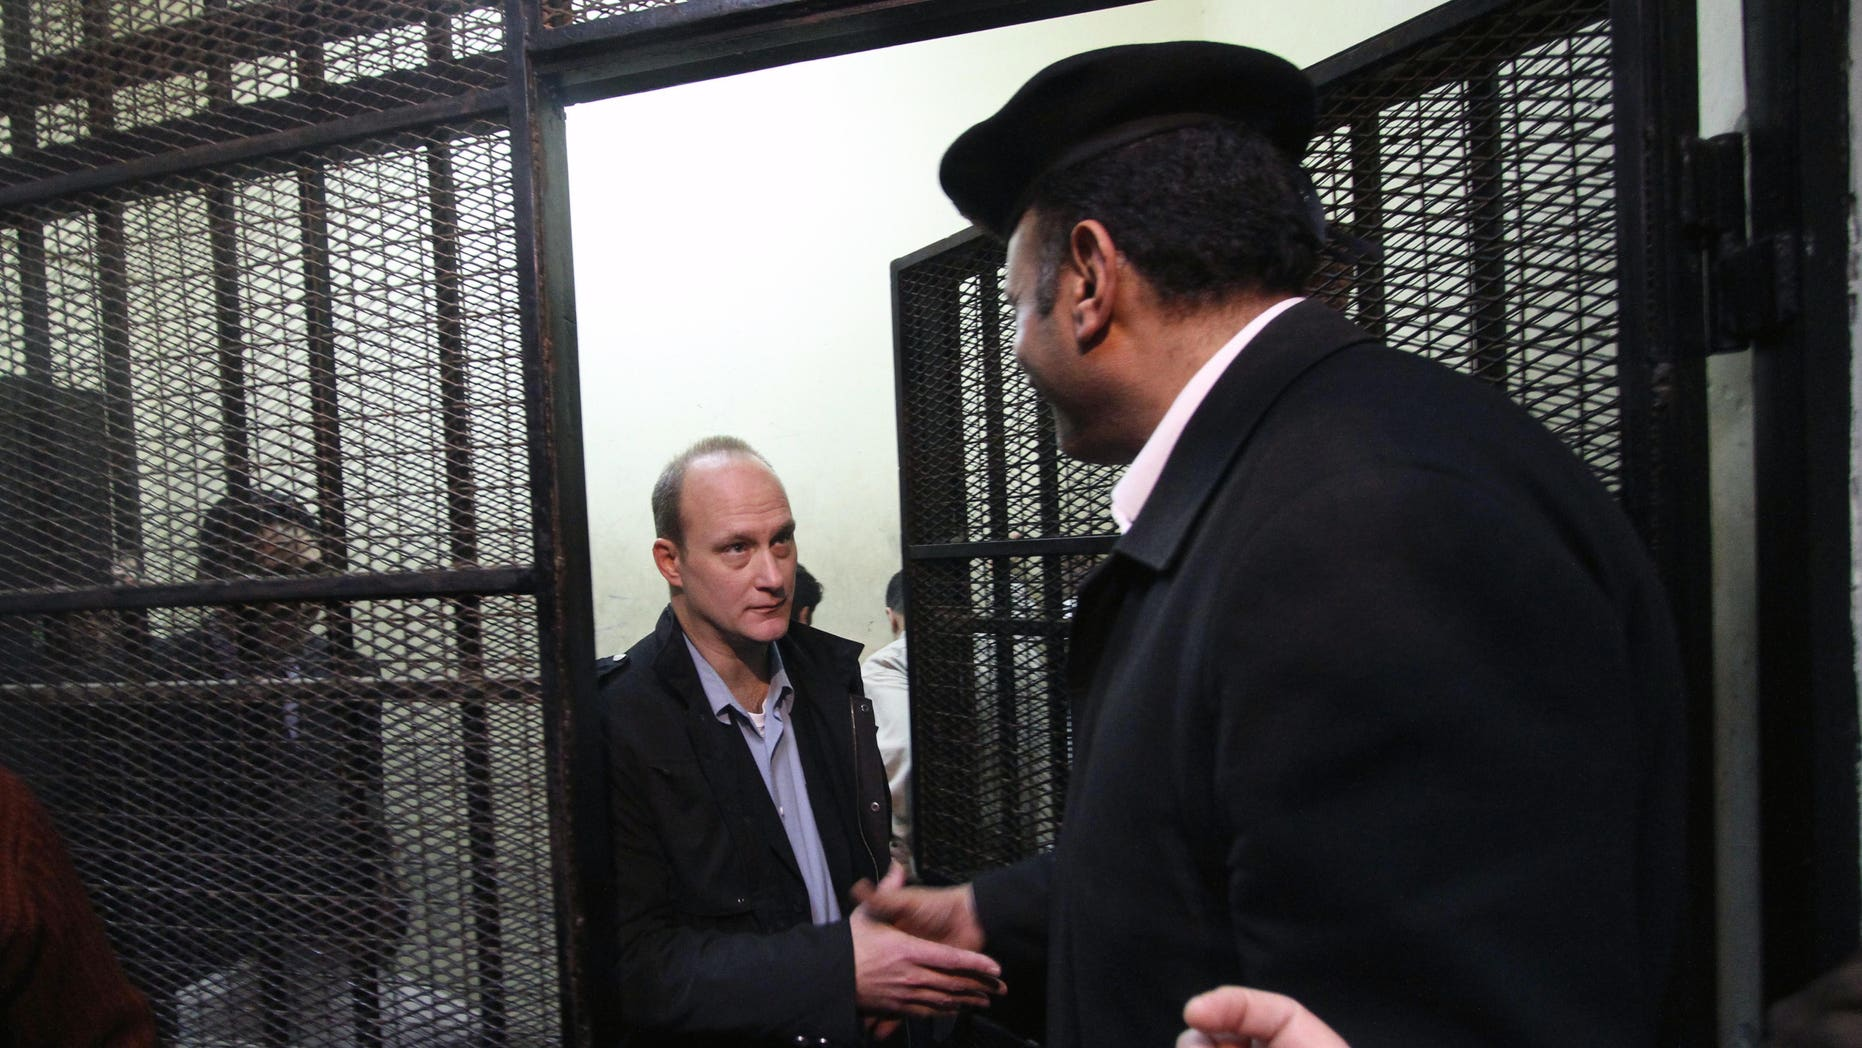 Mar. 8, 2012: American Robert Becker of the National Democratic Institute leaves the defendants' cage after a hearing in the trial of employees of nonprofit groups in Cairo, Egypt.